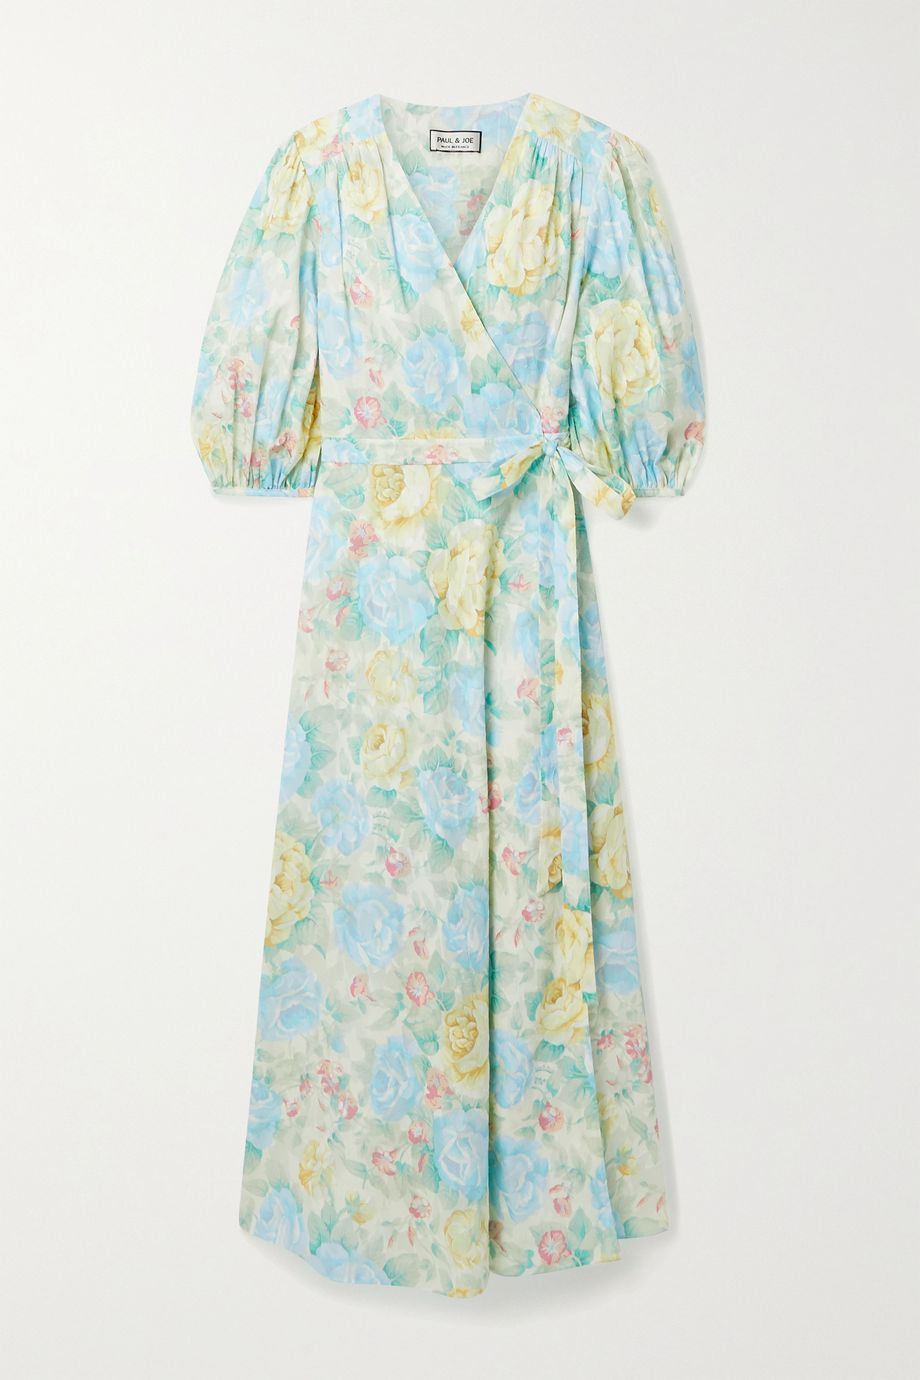 Paul & Joe Floral-print fil coupé cotton midi wrap dress